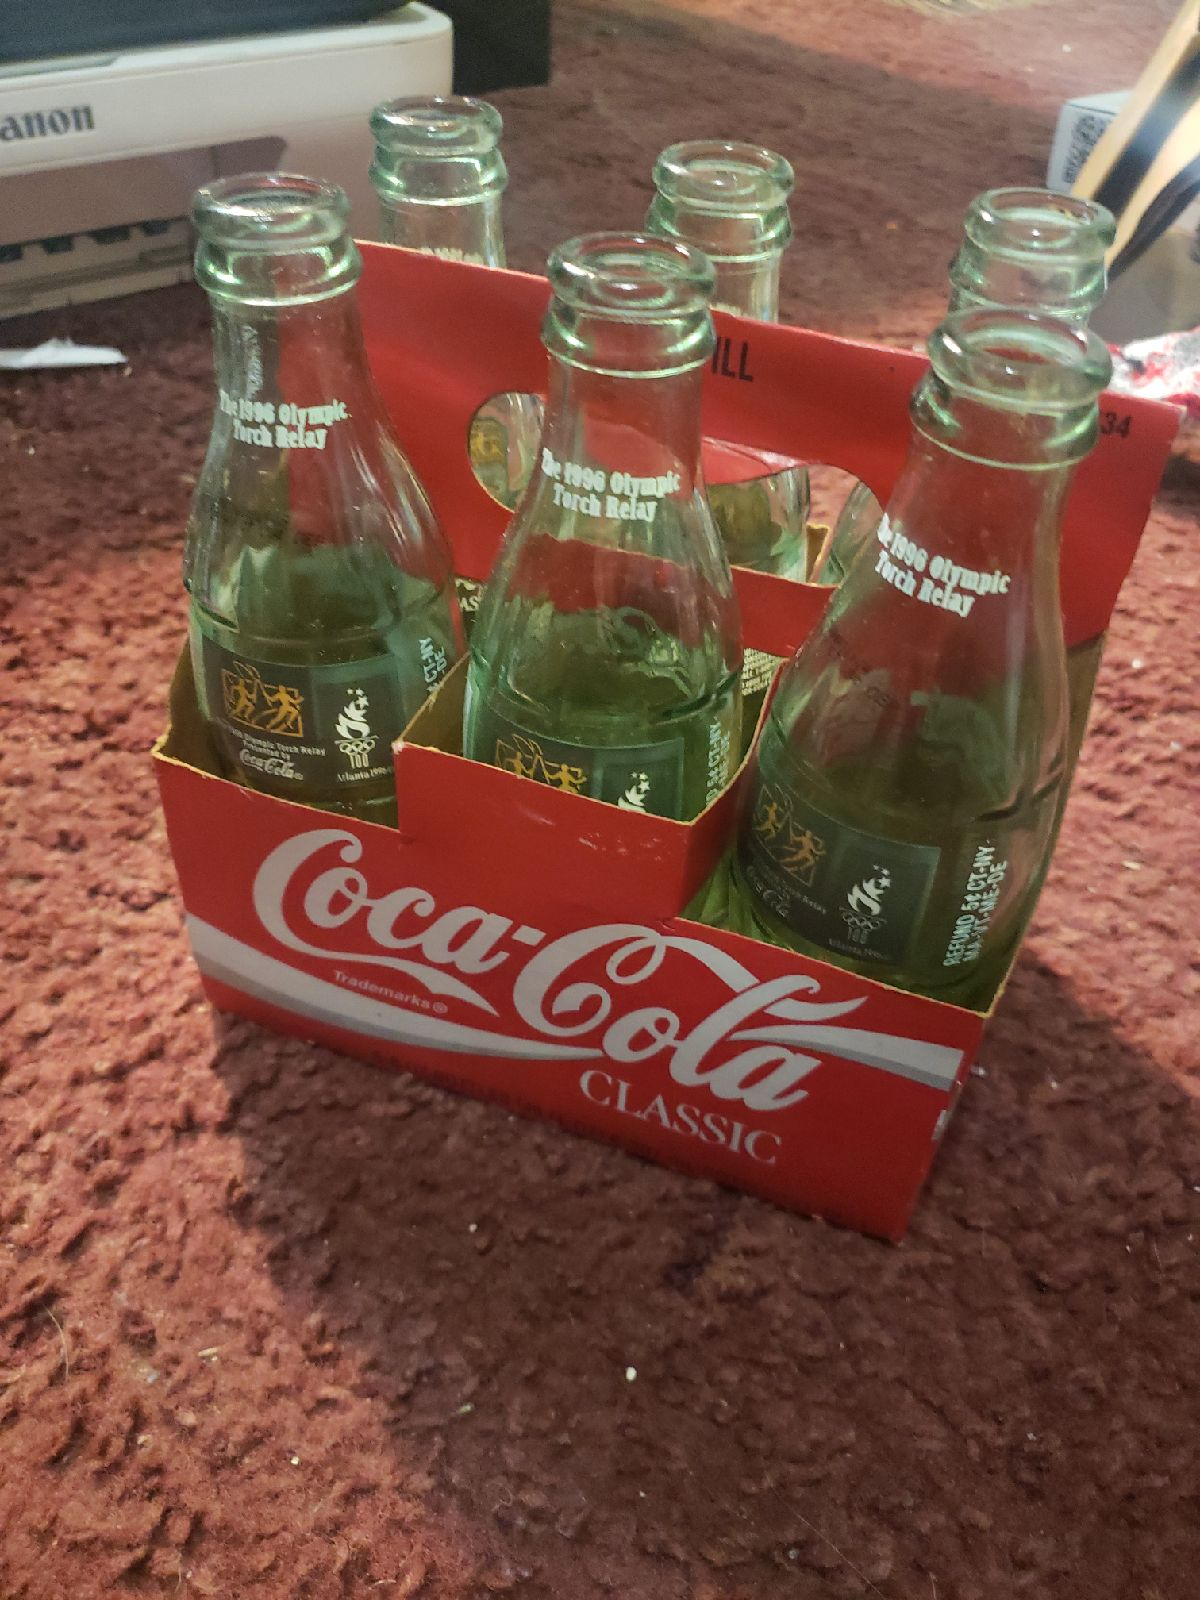 Coca cola bottles from the 1996 olympic